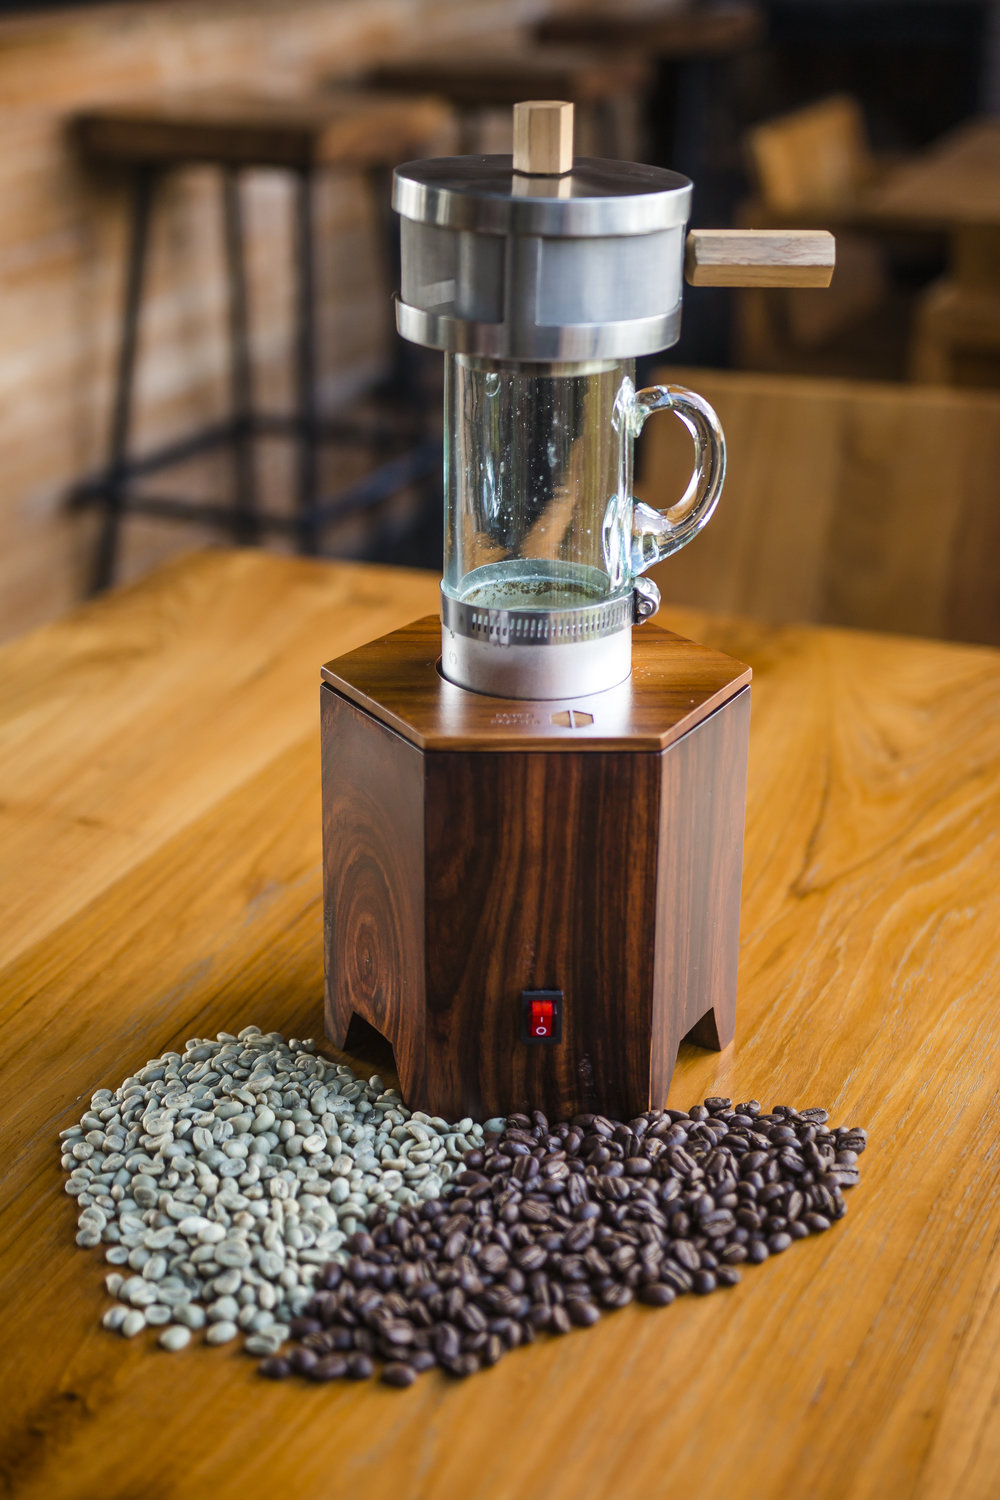 The Power Roaster - home roasting has never been easier or more affordable!